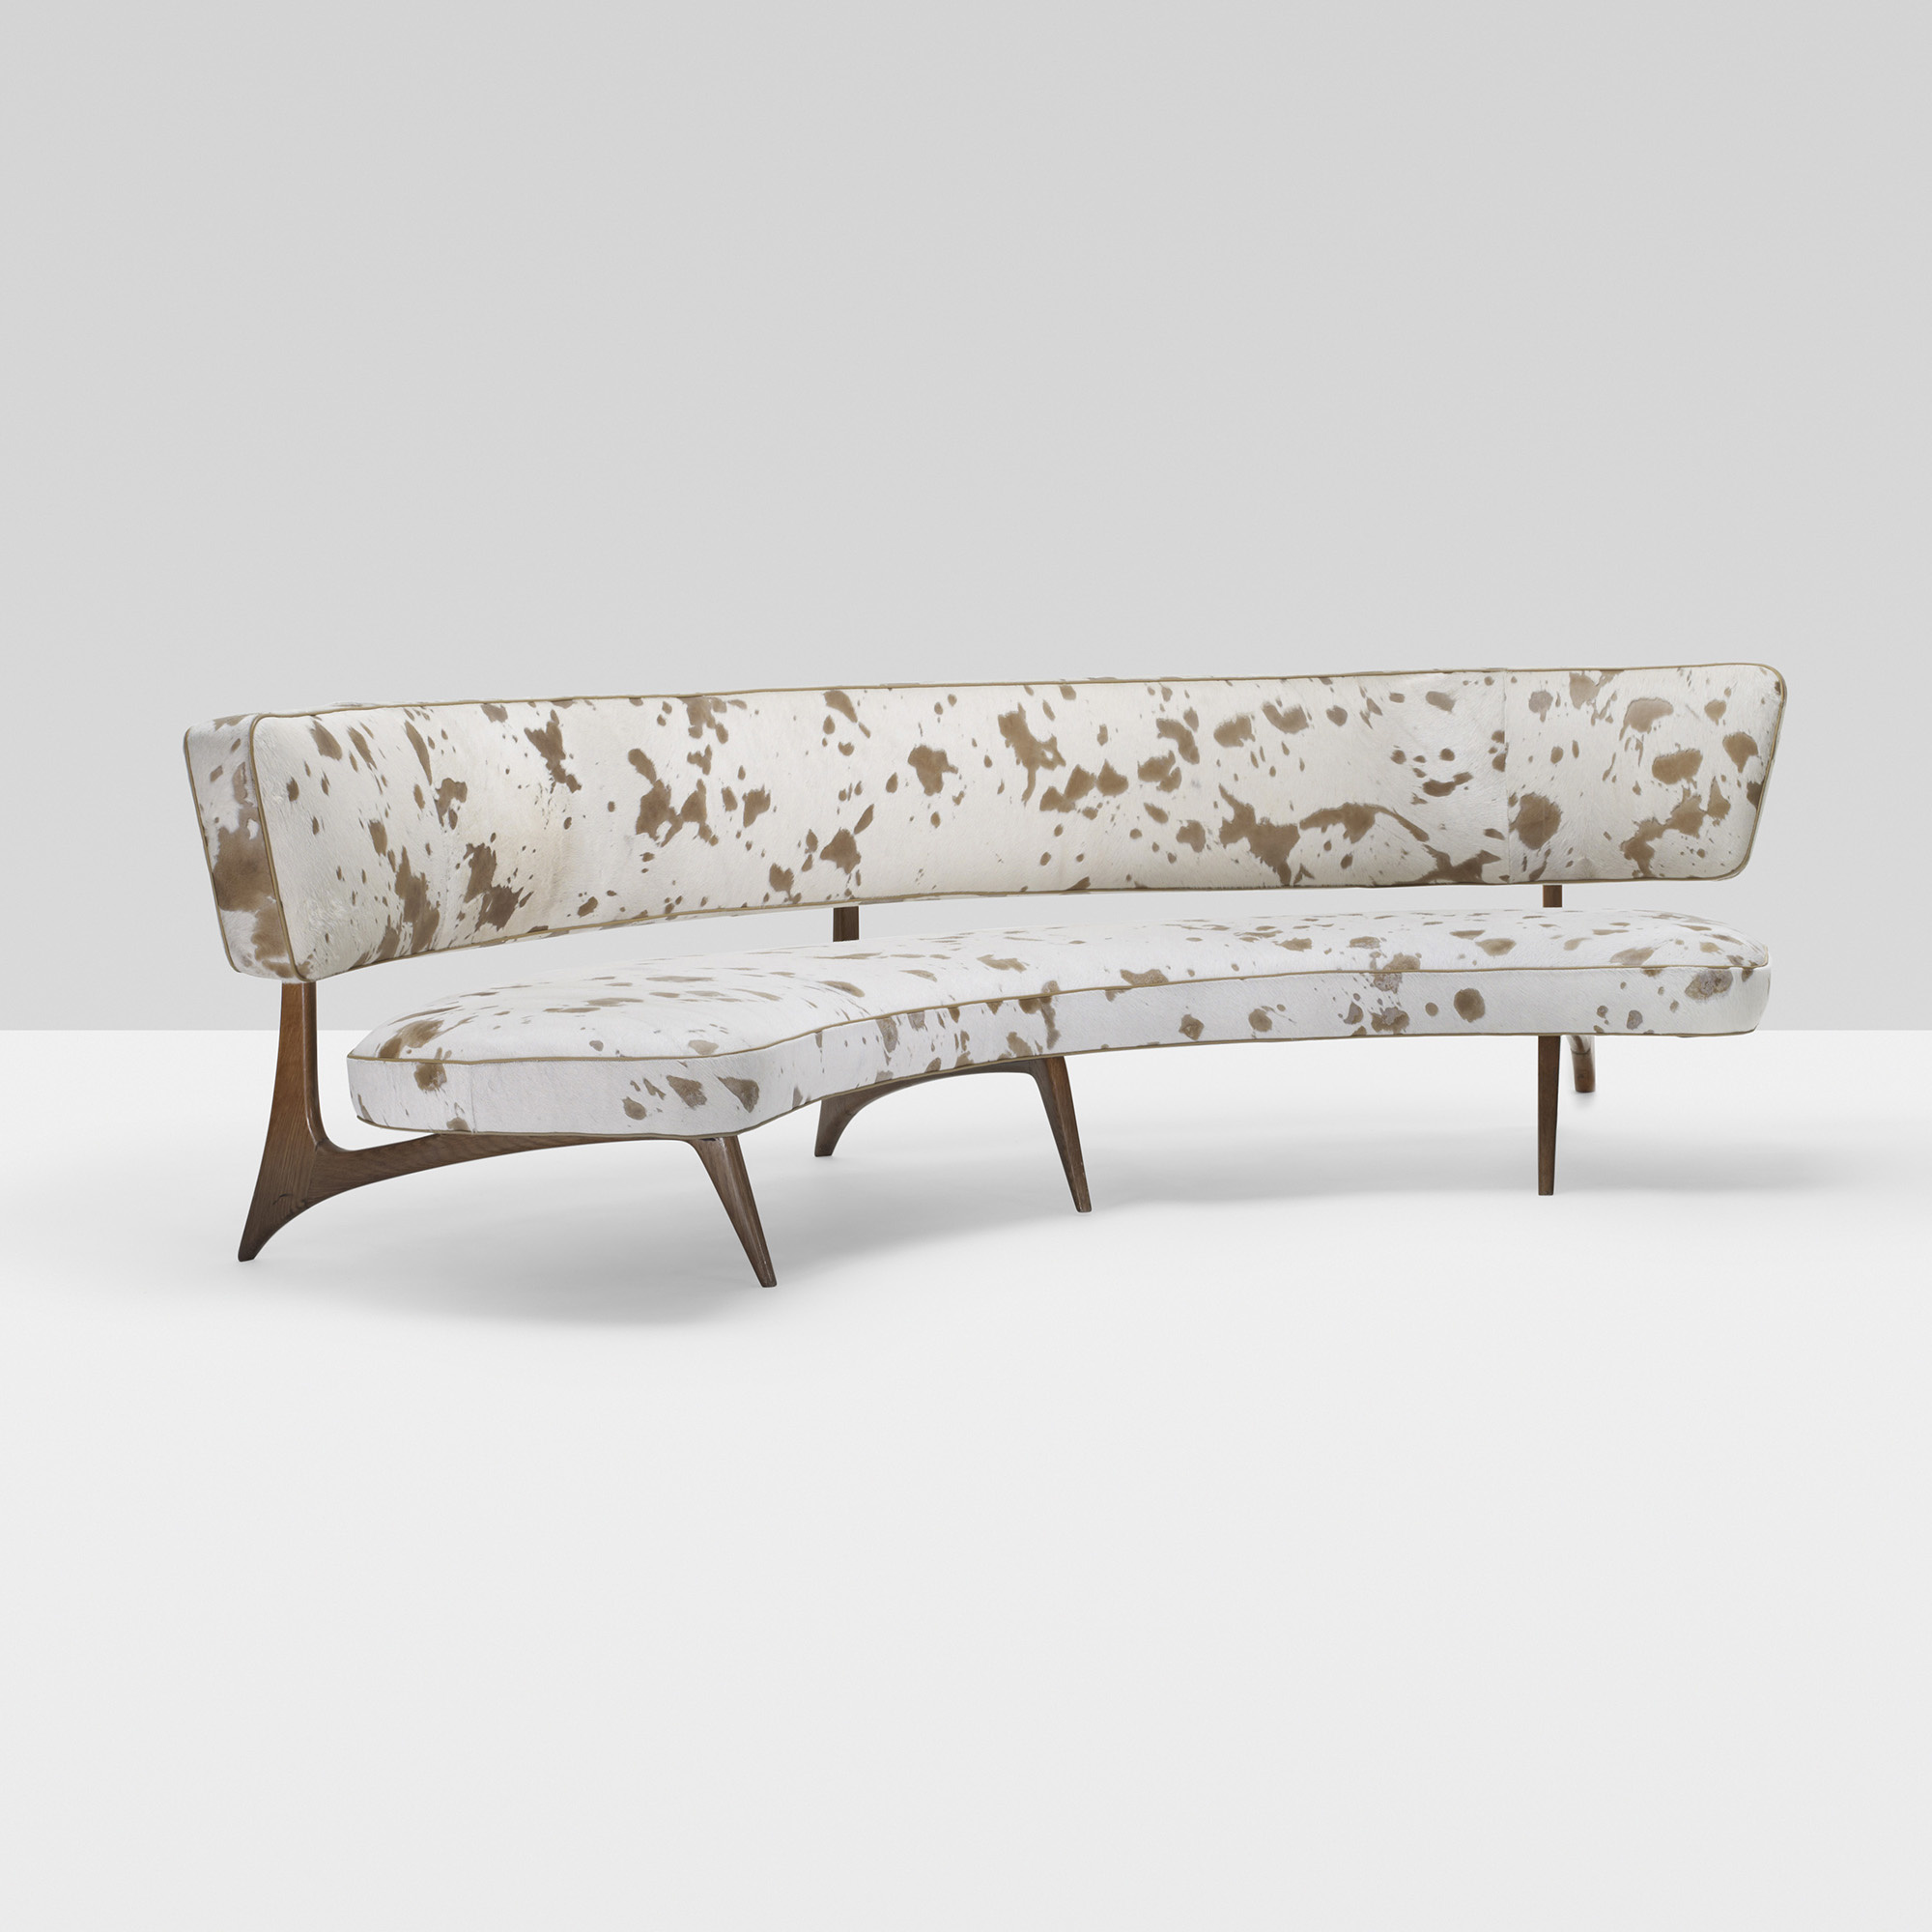 397 Vladimir Kagan Floating Curve Sofa 1 Of 4